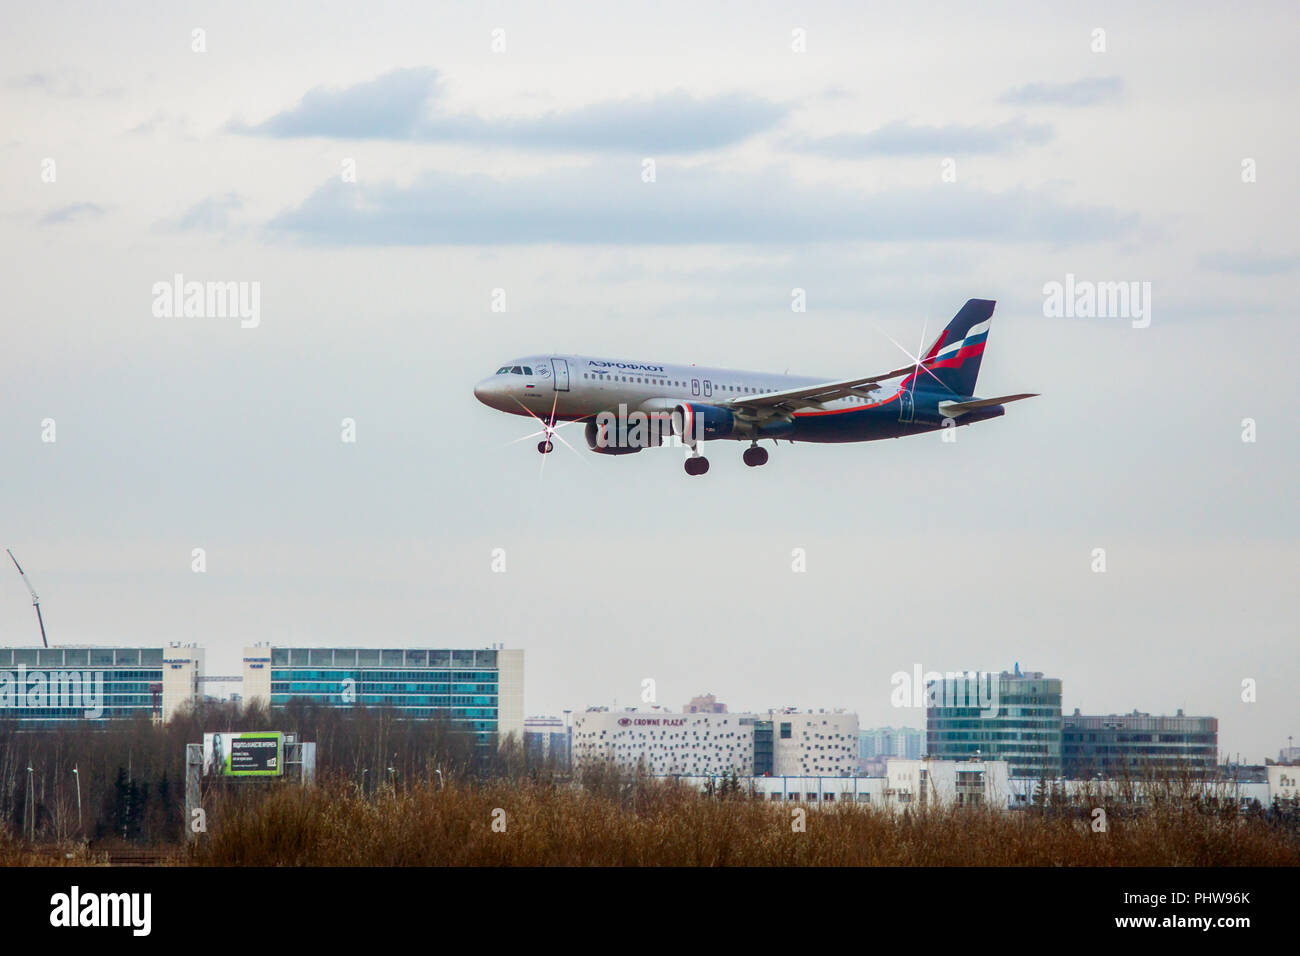 SAINT PETERSBURG, RUSSIA - APRIL 09, 2017: Flying the Airbus A320-214(WL) (VQ-BSI) airline «Aeroflot». Aircraft name «V. Komarov». The plane goes on l - Stock Image